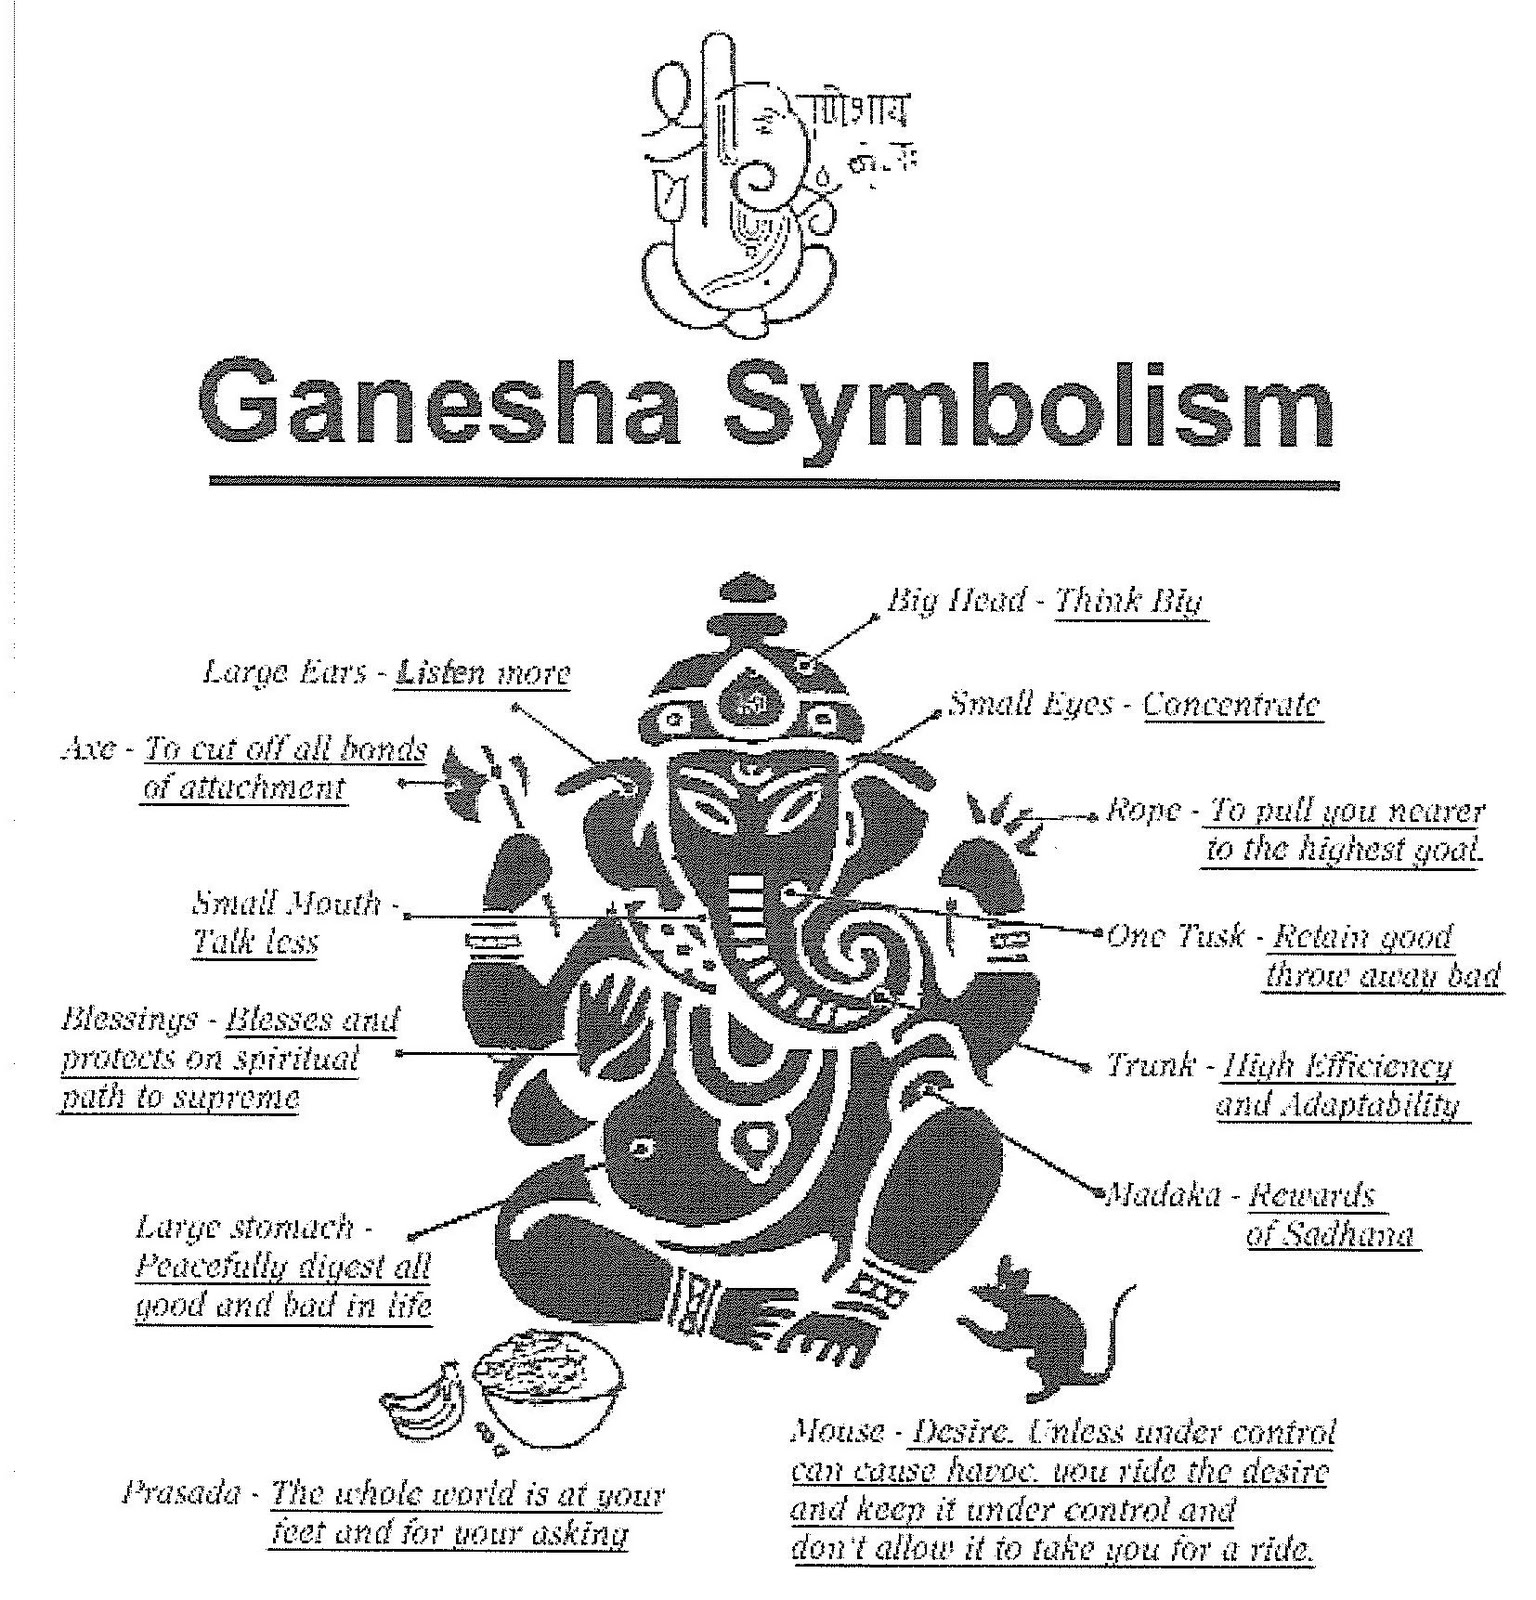 Ganesh silk roads and siamese smiles by dawood khan posted in thinking out loud tagged ganesh mahakala om buycottarizona